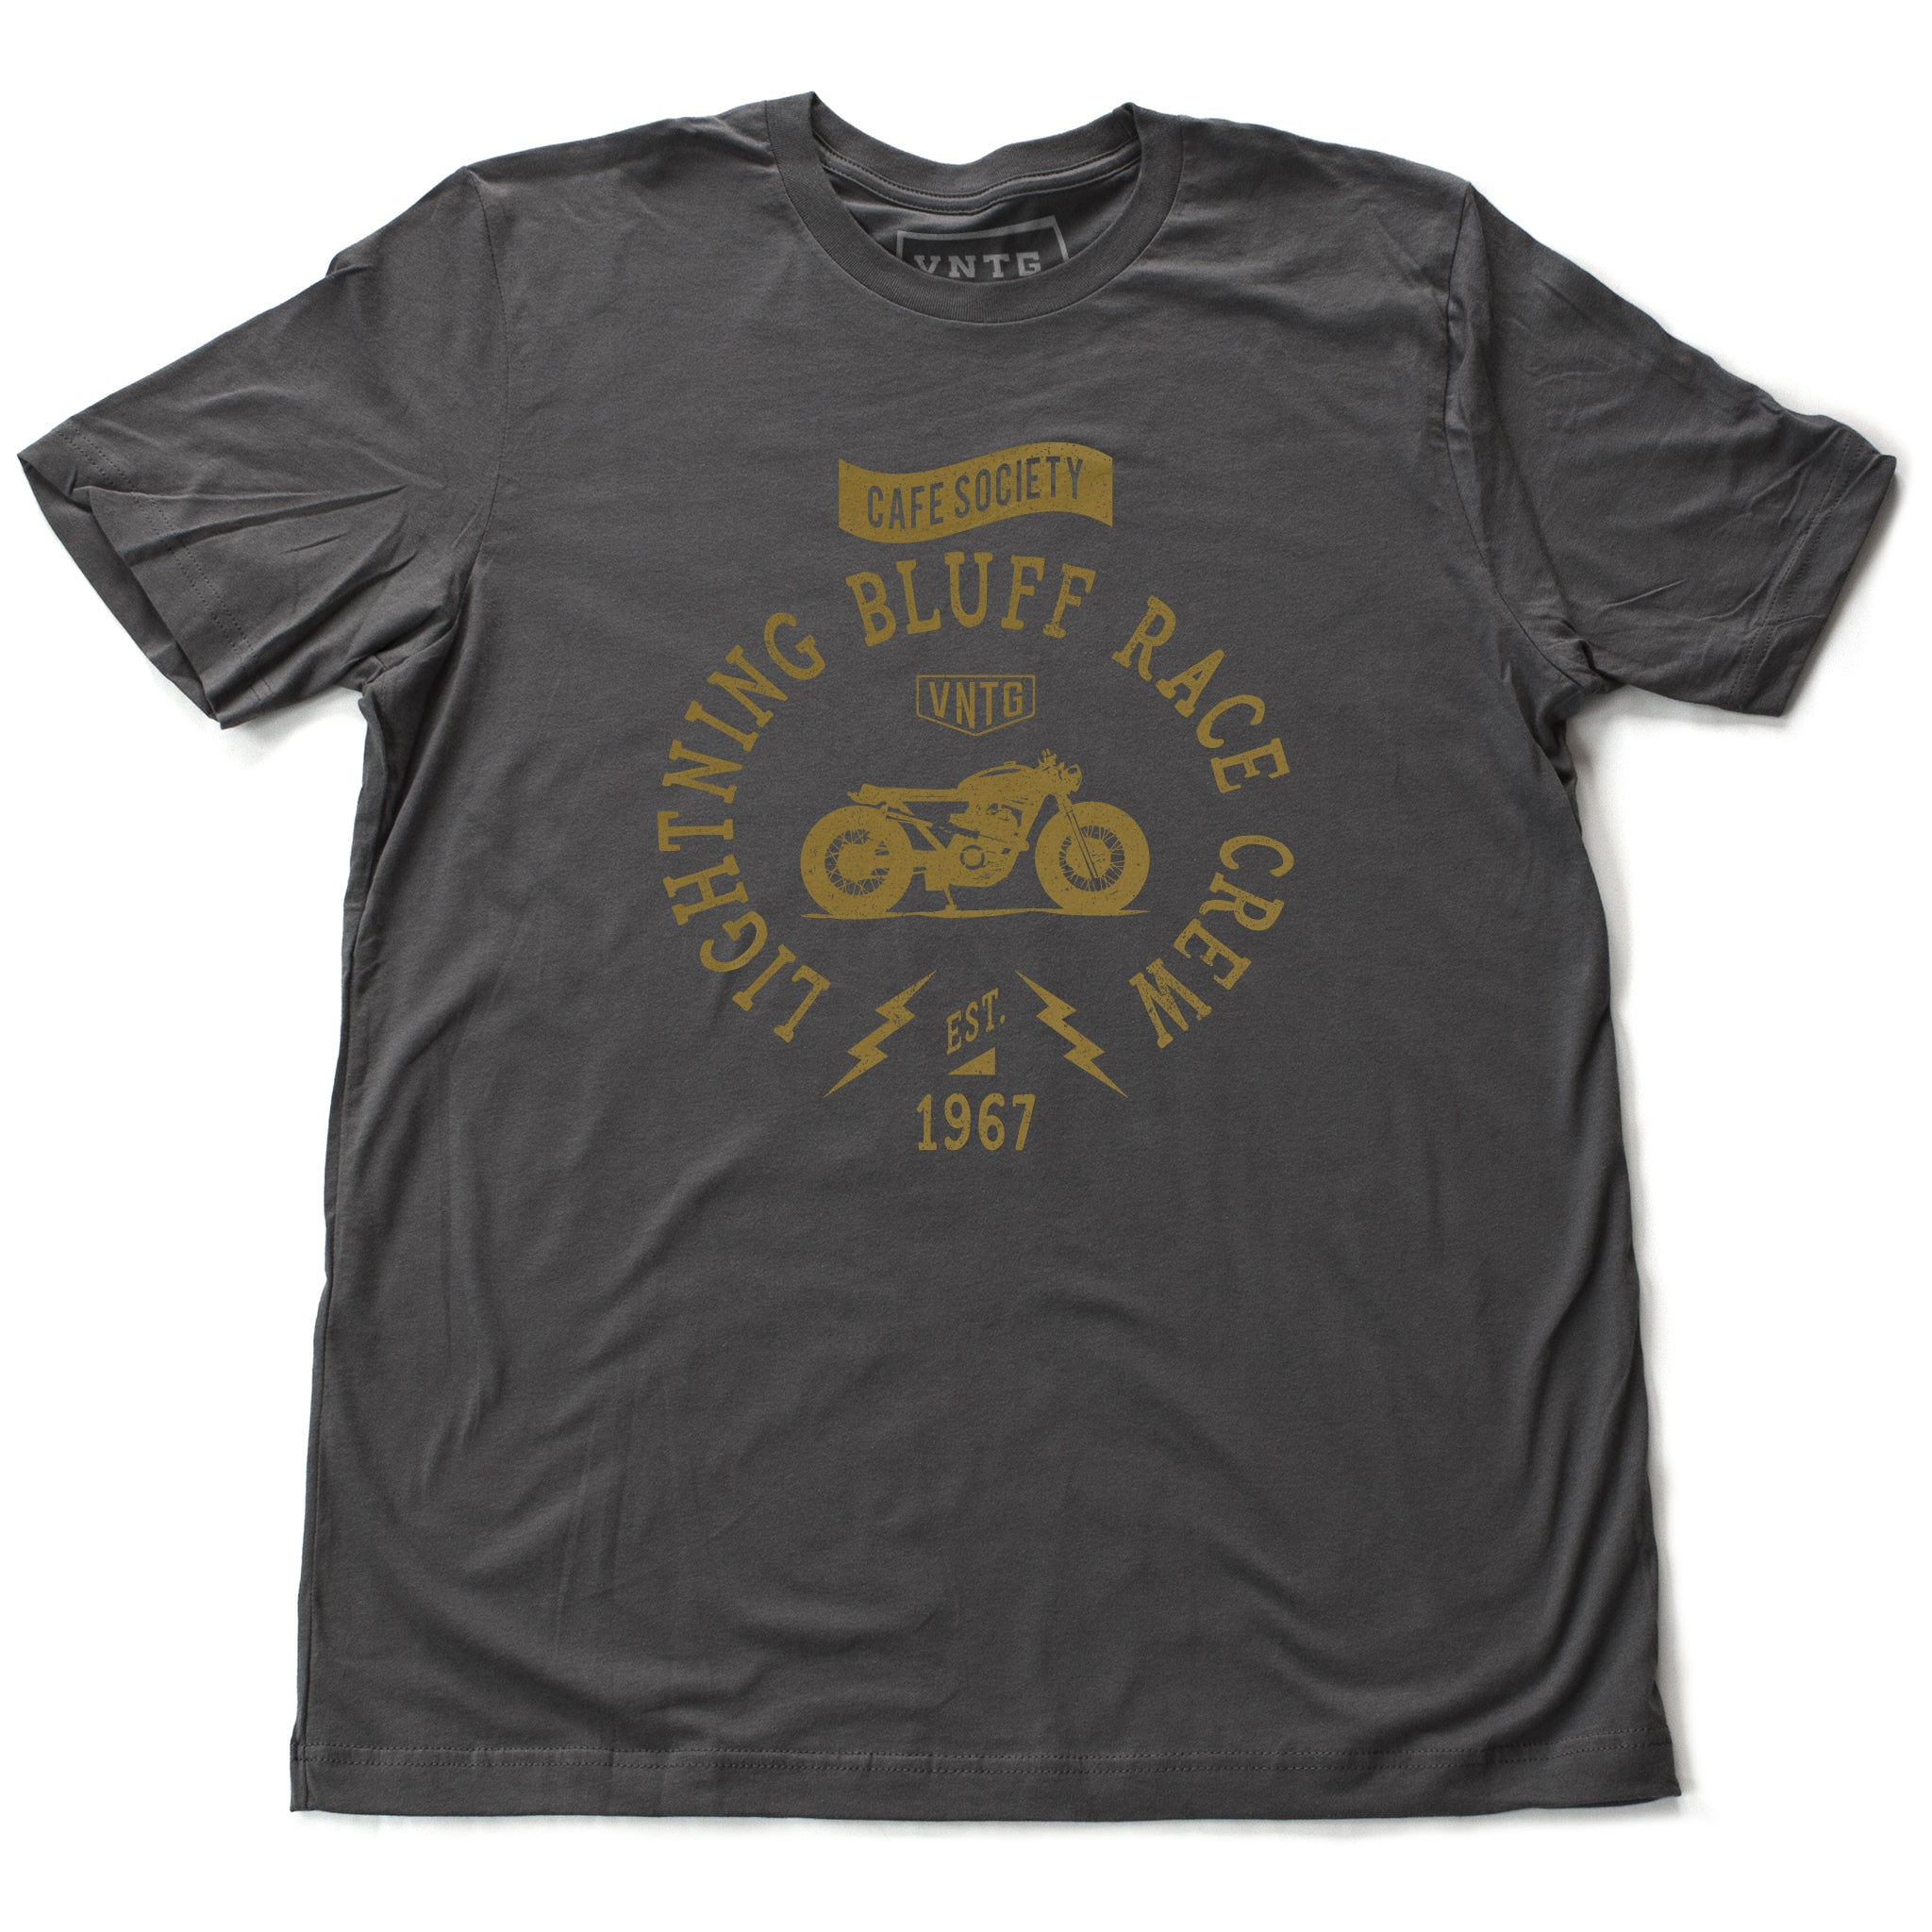 "A vintage-inspired retro t-shirt for a fictitious motorcycle race crew. For the café racer genre of vintage motorcycles, this shirt reads ""Lightning Bluff Race Crew, established 1967"" in Asphalt Gray, by fashion brand VNTG., for wolfsaint.net"